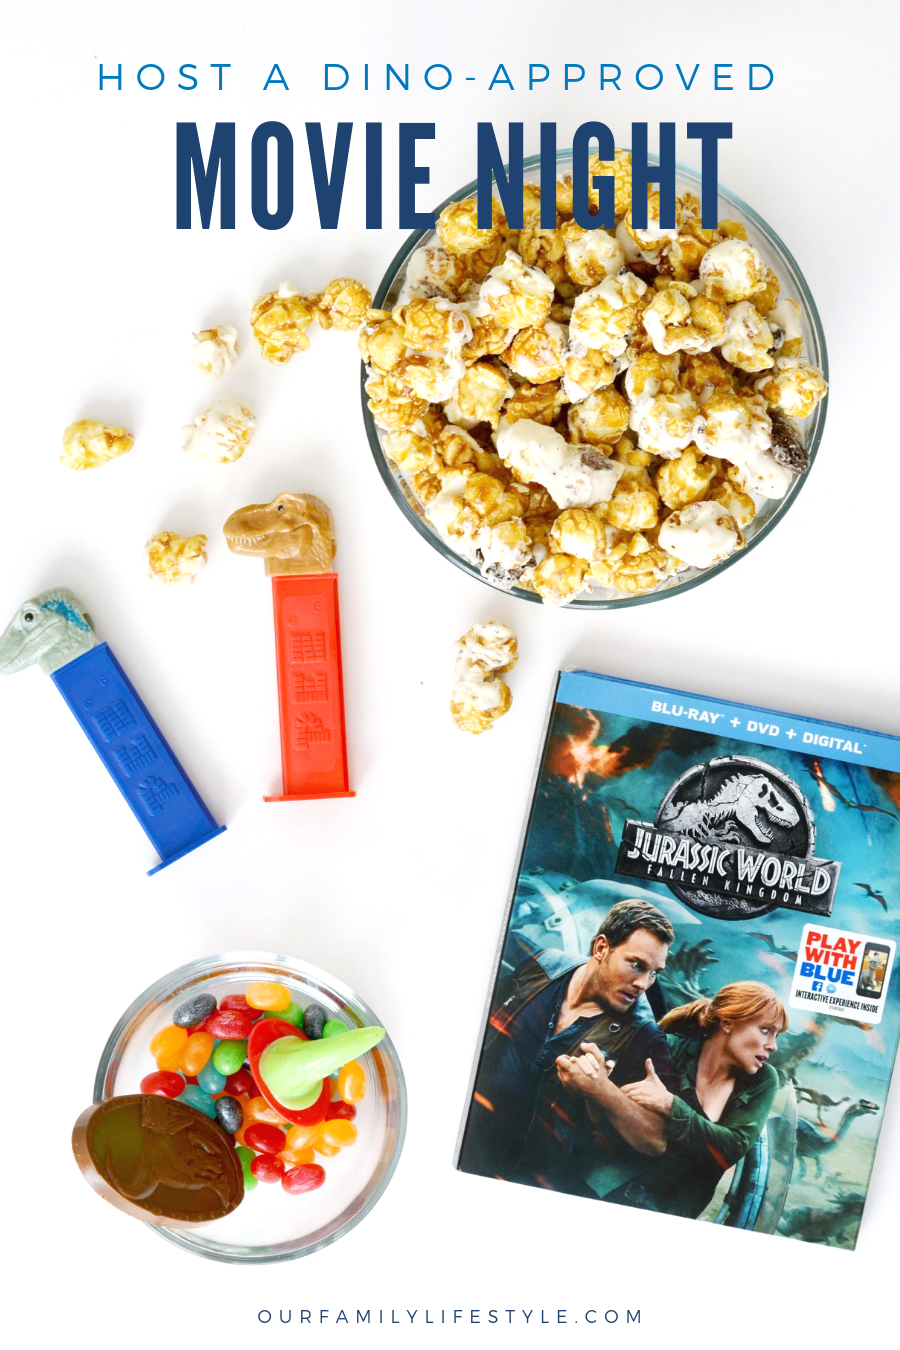 Host a Dino-approved Movie Night